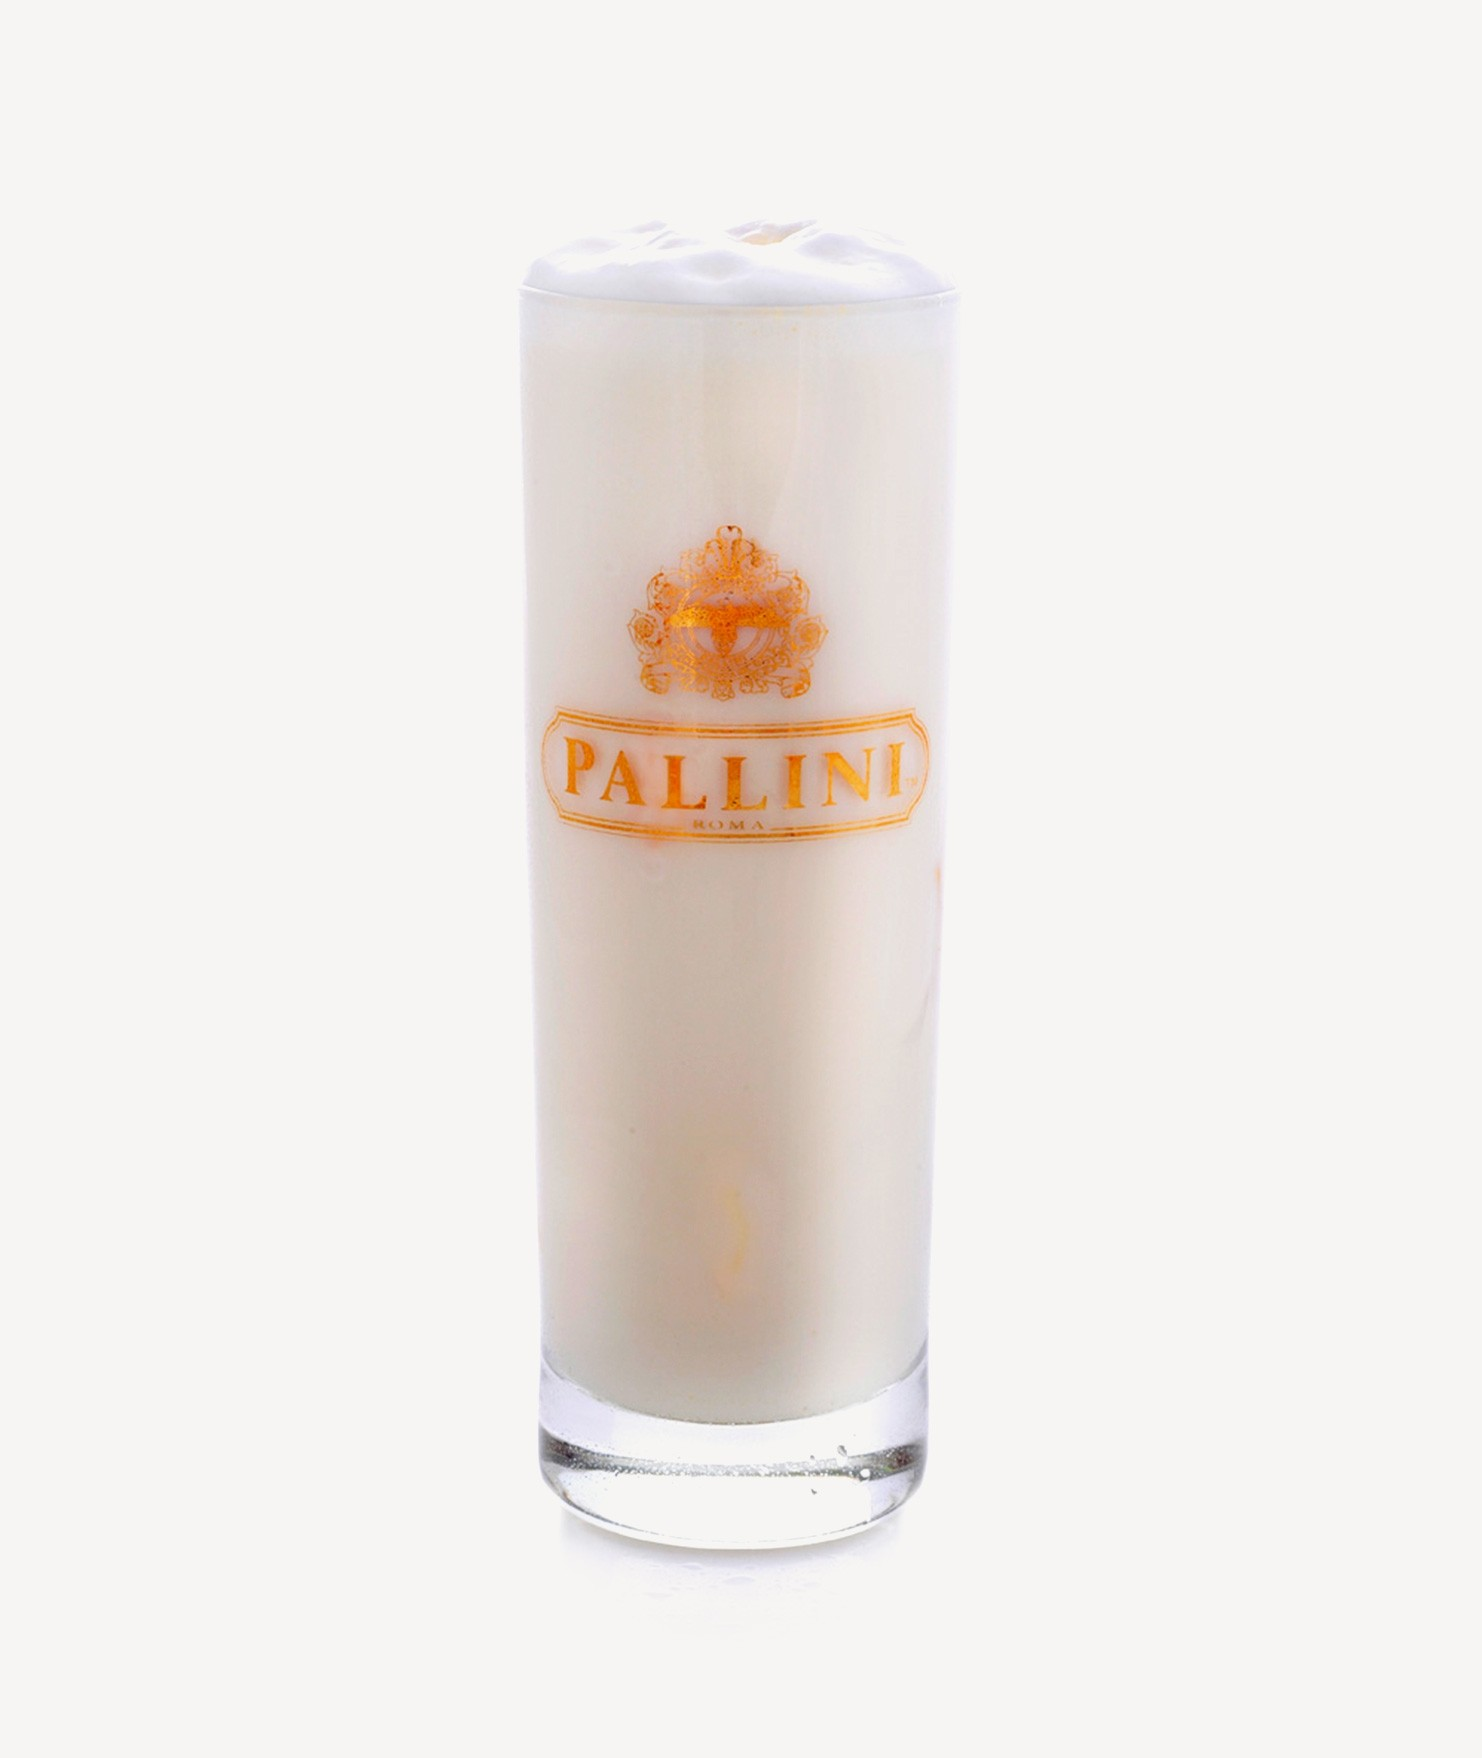 Pallini Cream Soda Photo